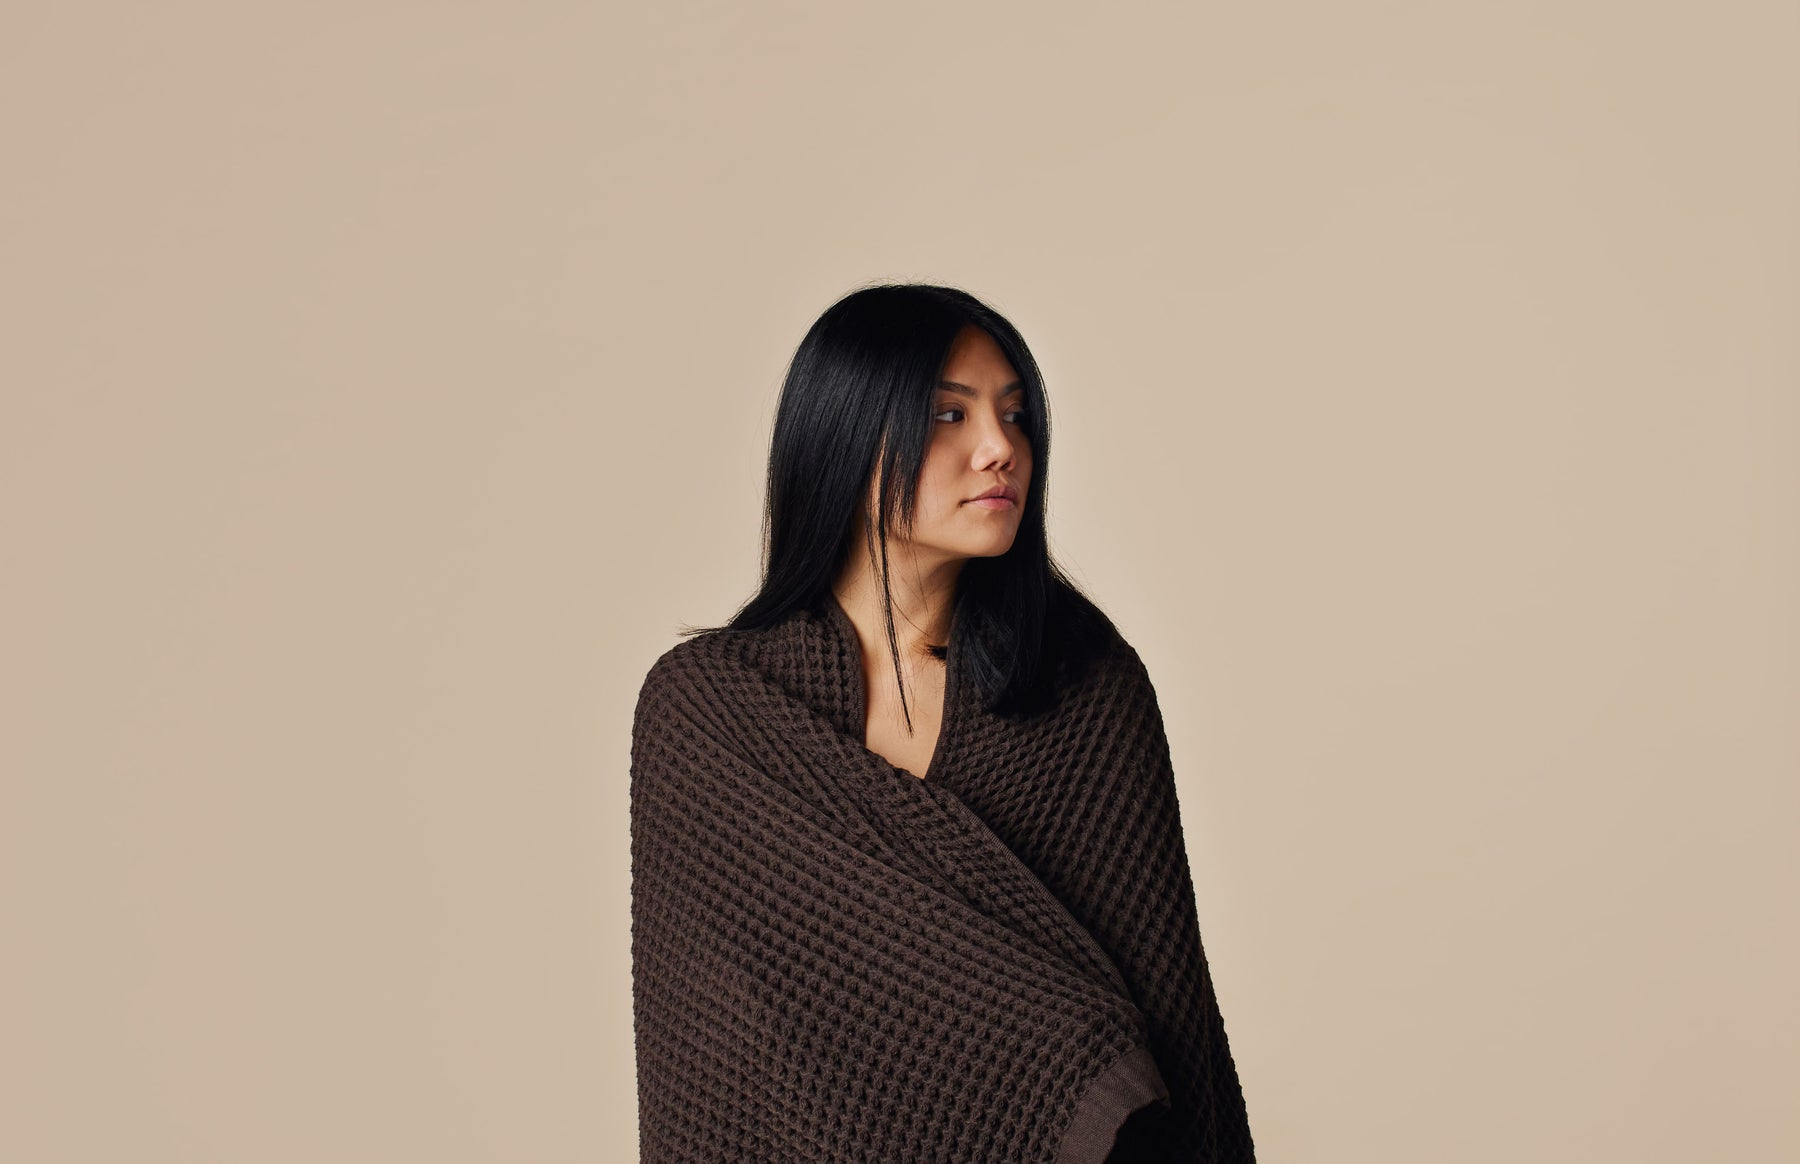 Wrapped up in the new Onsen Bath Towel in Brown